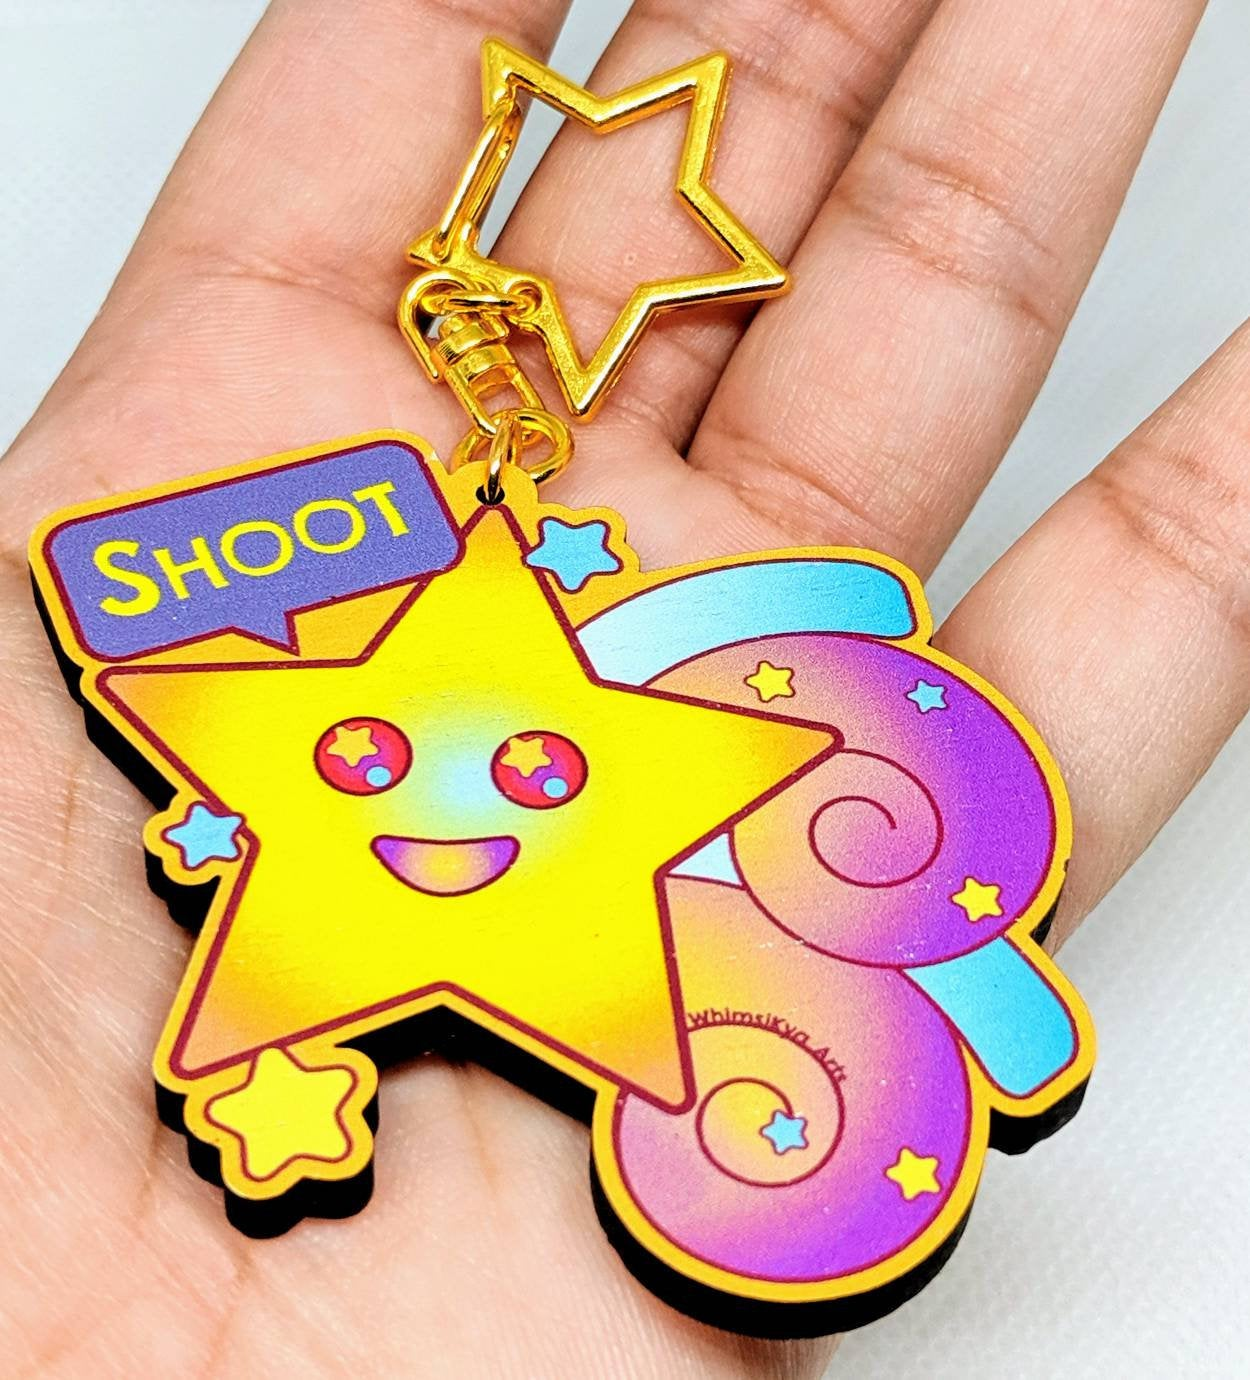 Astraya The Shooting Star Keychain